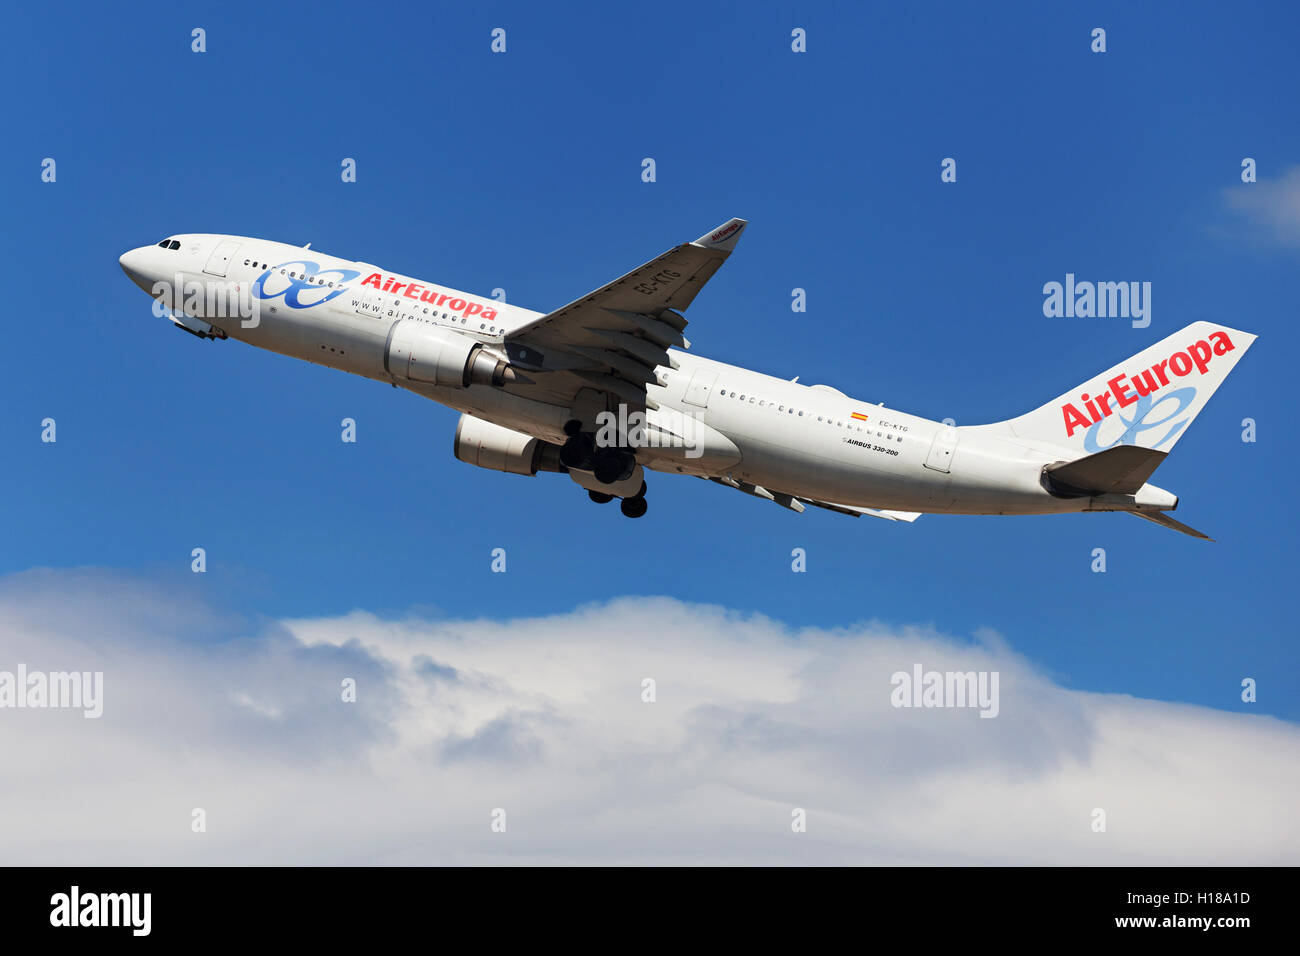 Air Europa Airbus A330-200 taking off from El Prat Airport in Barcelona, Spain. - Stock Image